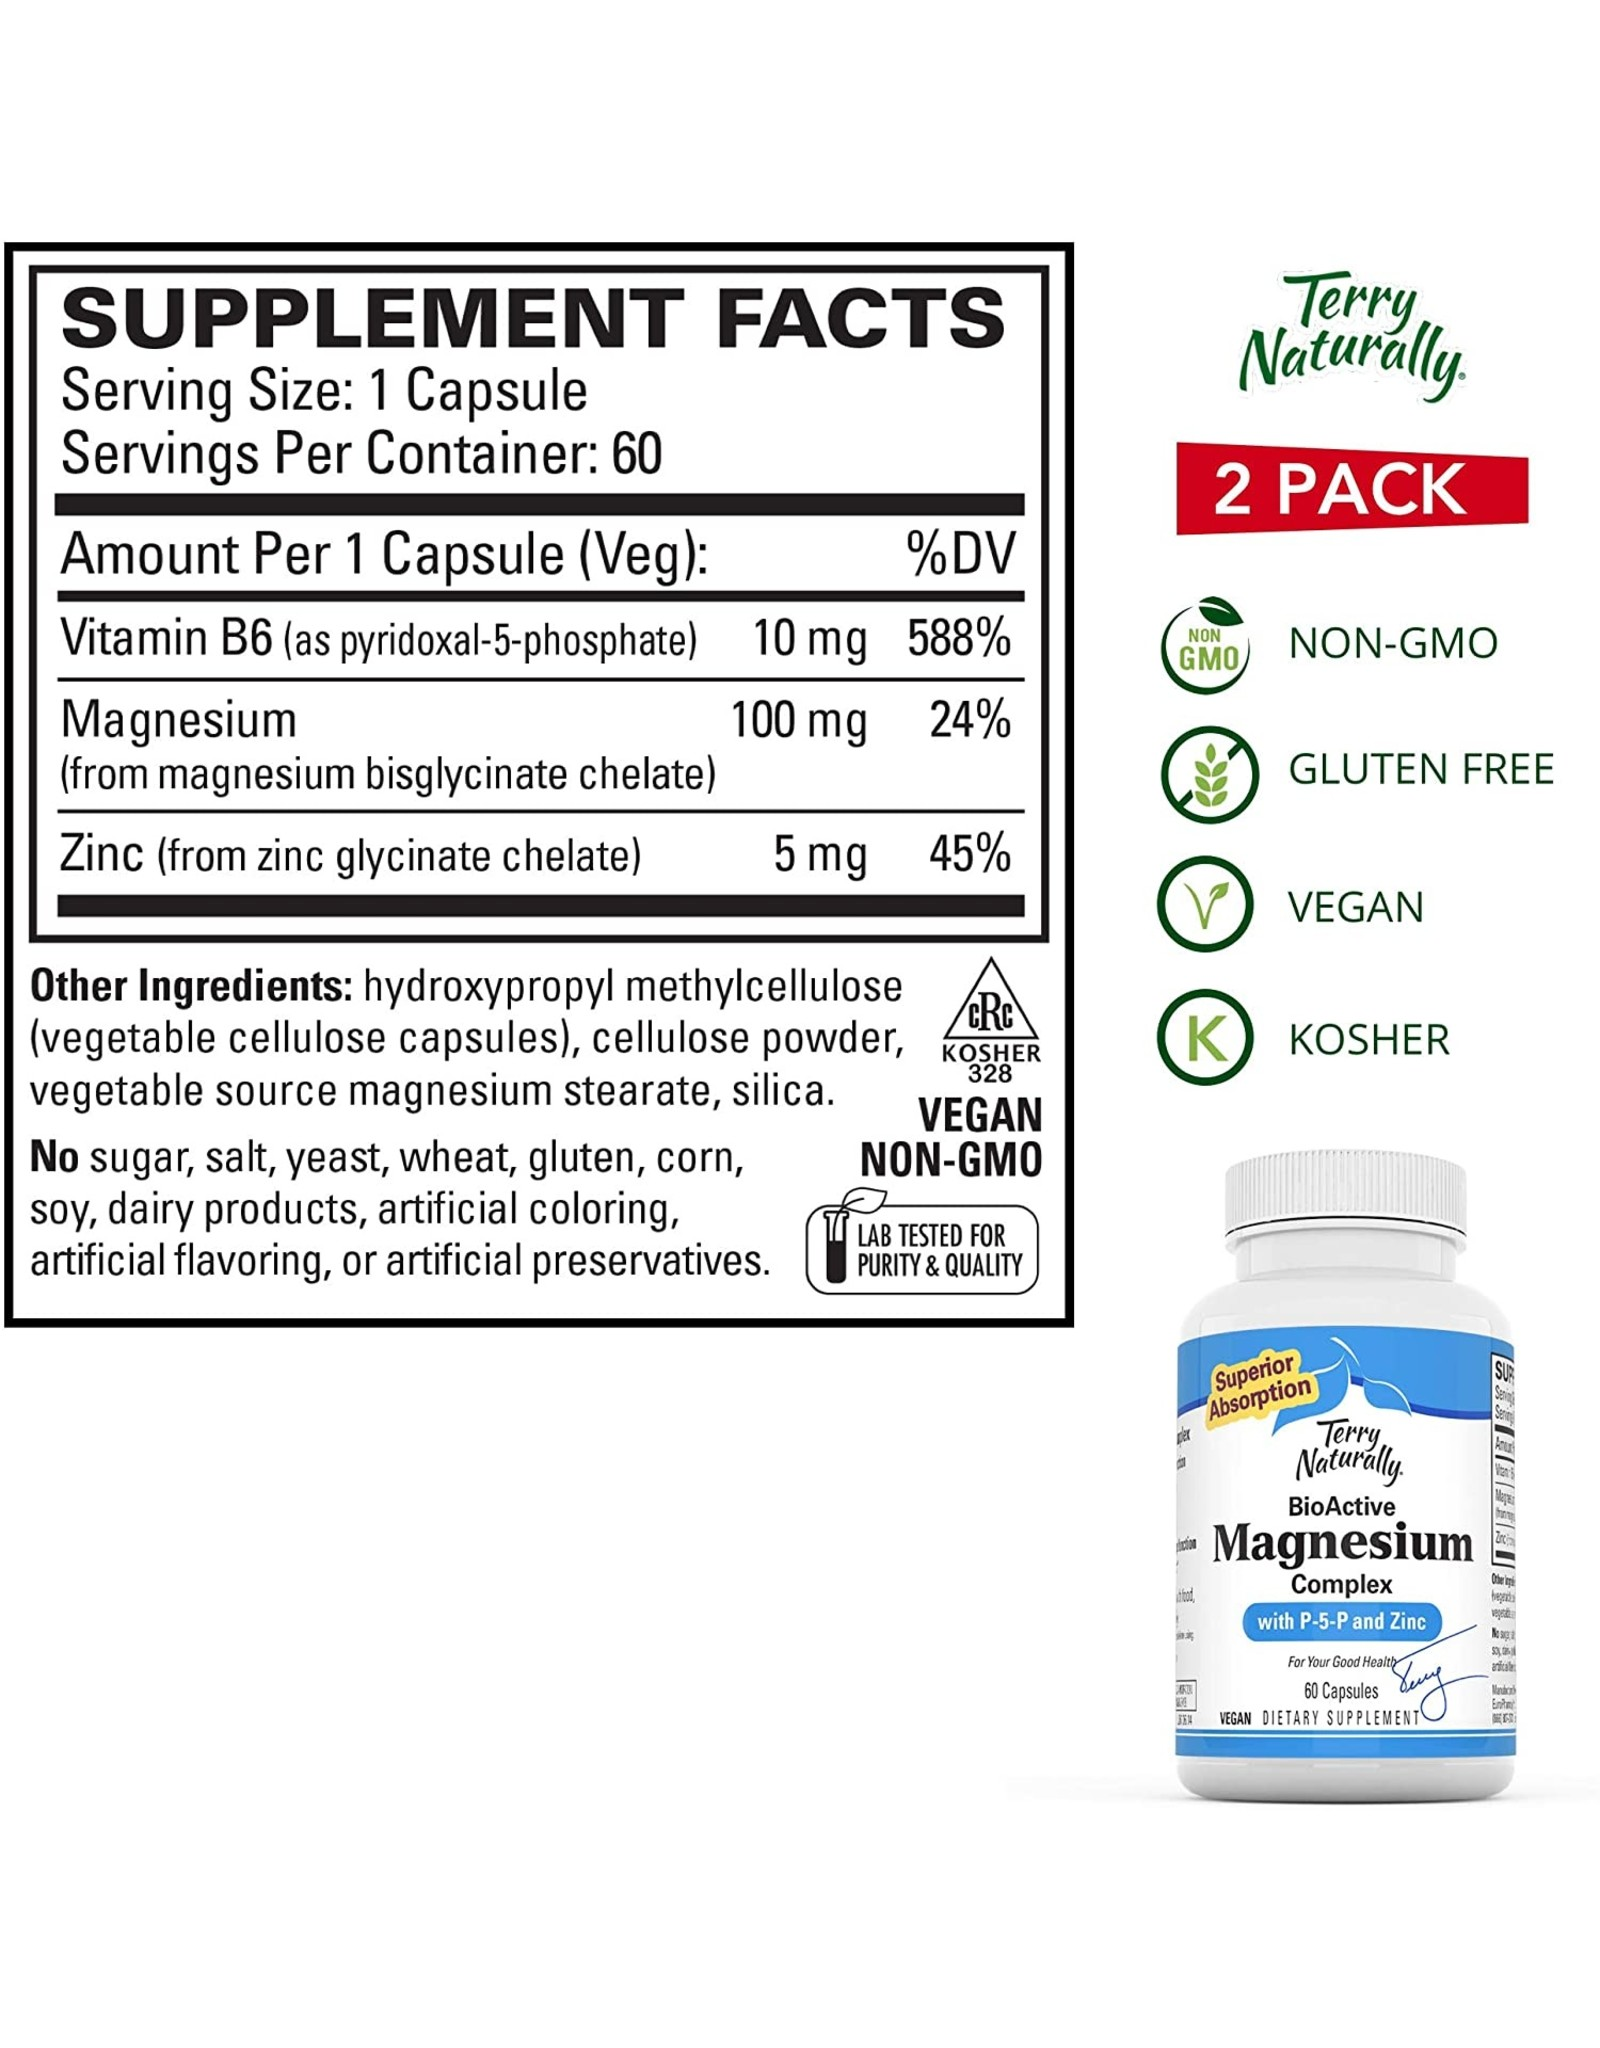 Terry Naturally BioActive Magnesium Complex 60ct